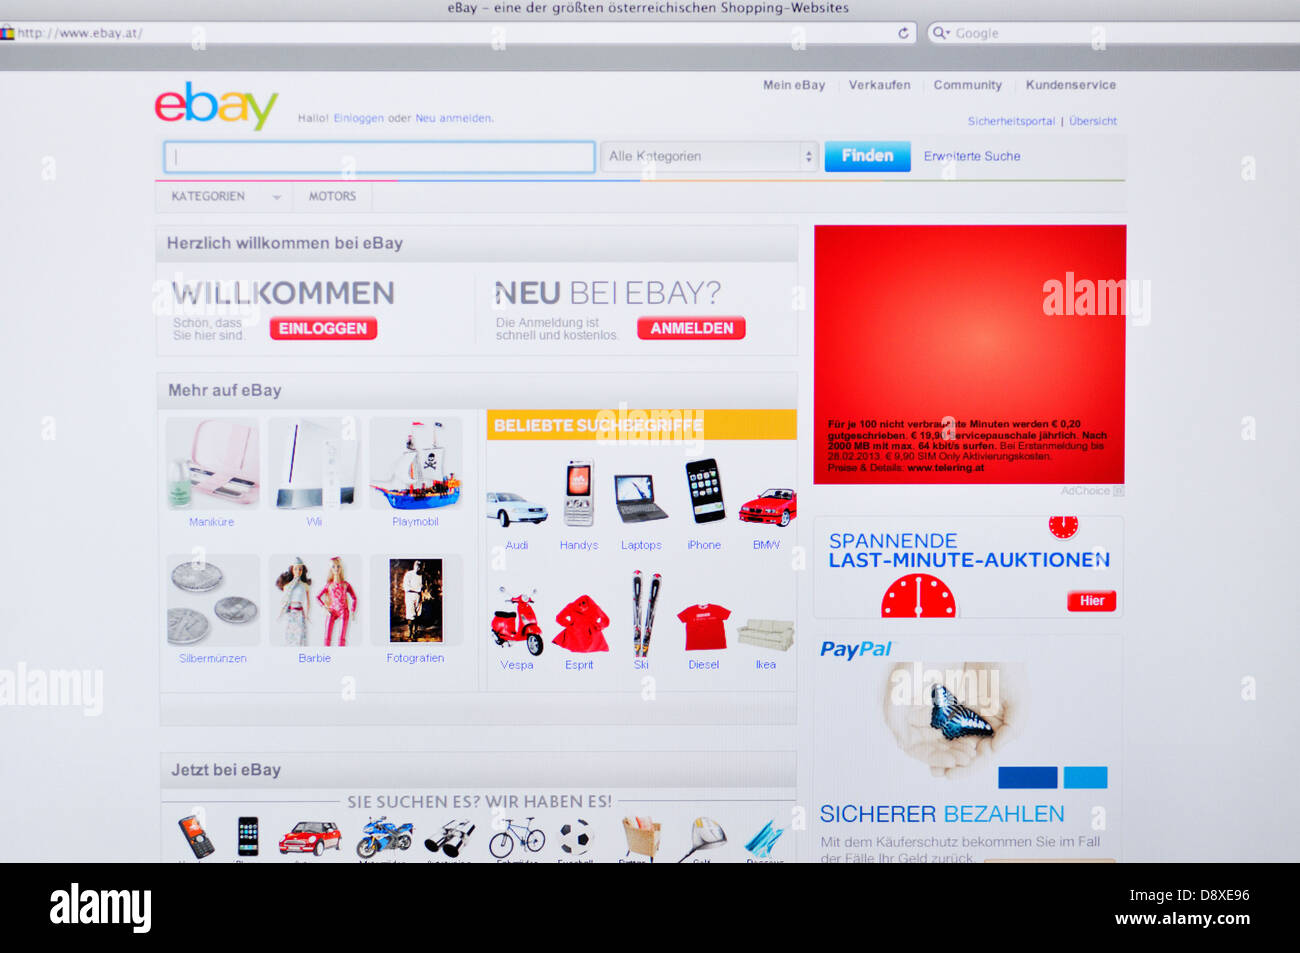 Online Australian Shopping Australia Ebay Online Shopping Website Stock Photo 57130338 Alamy